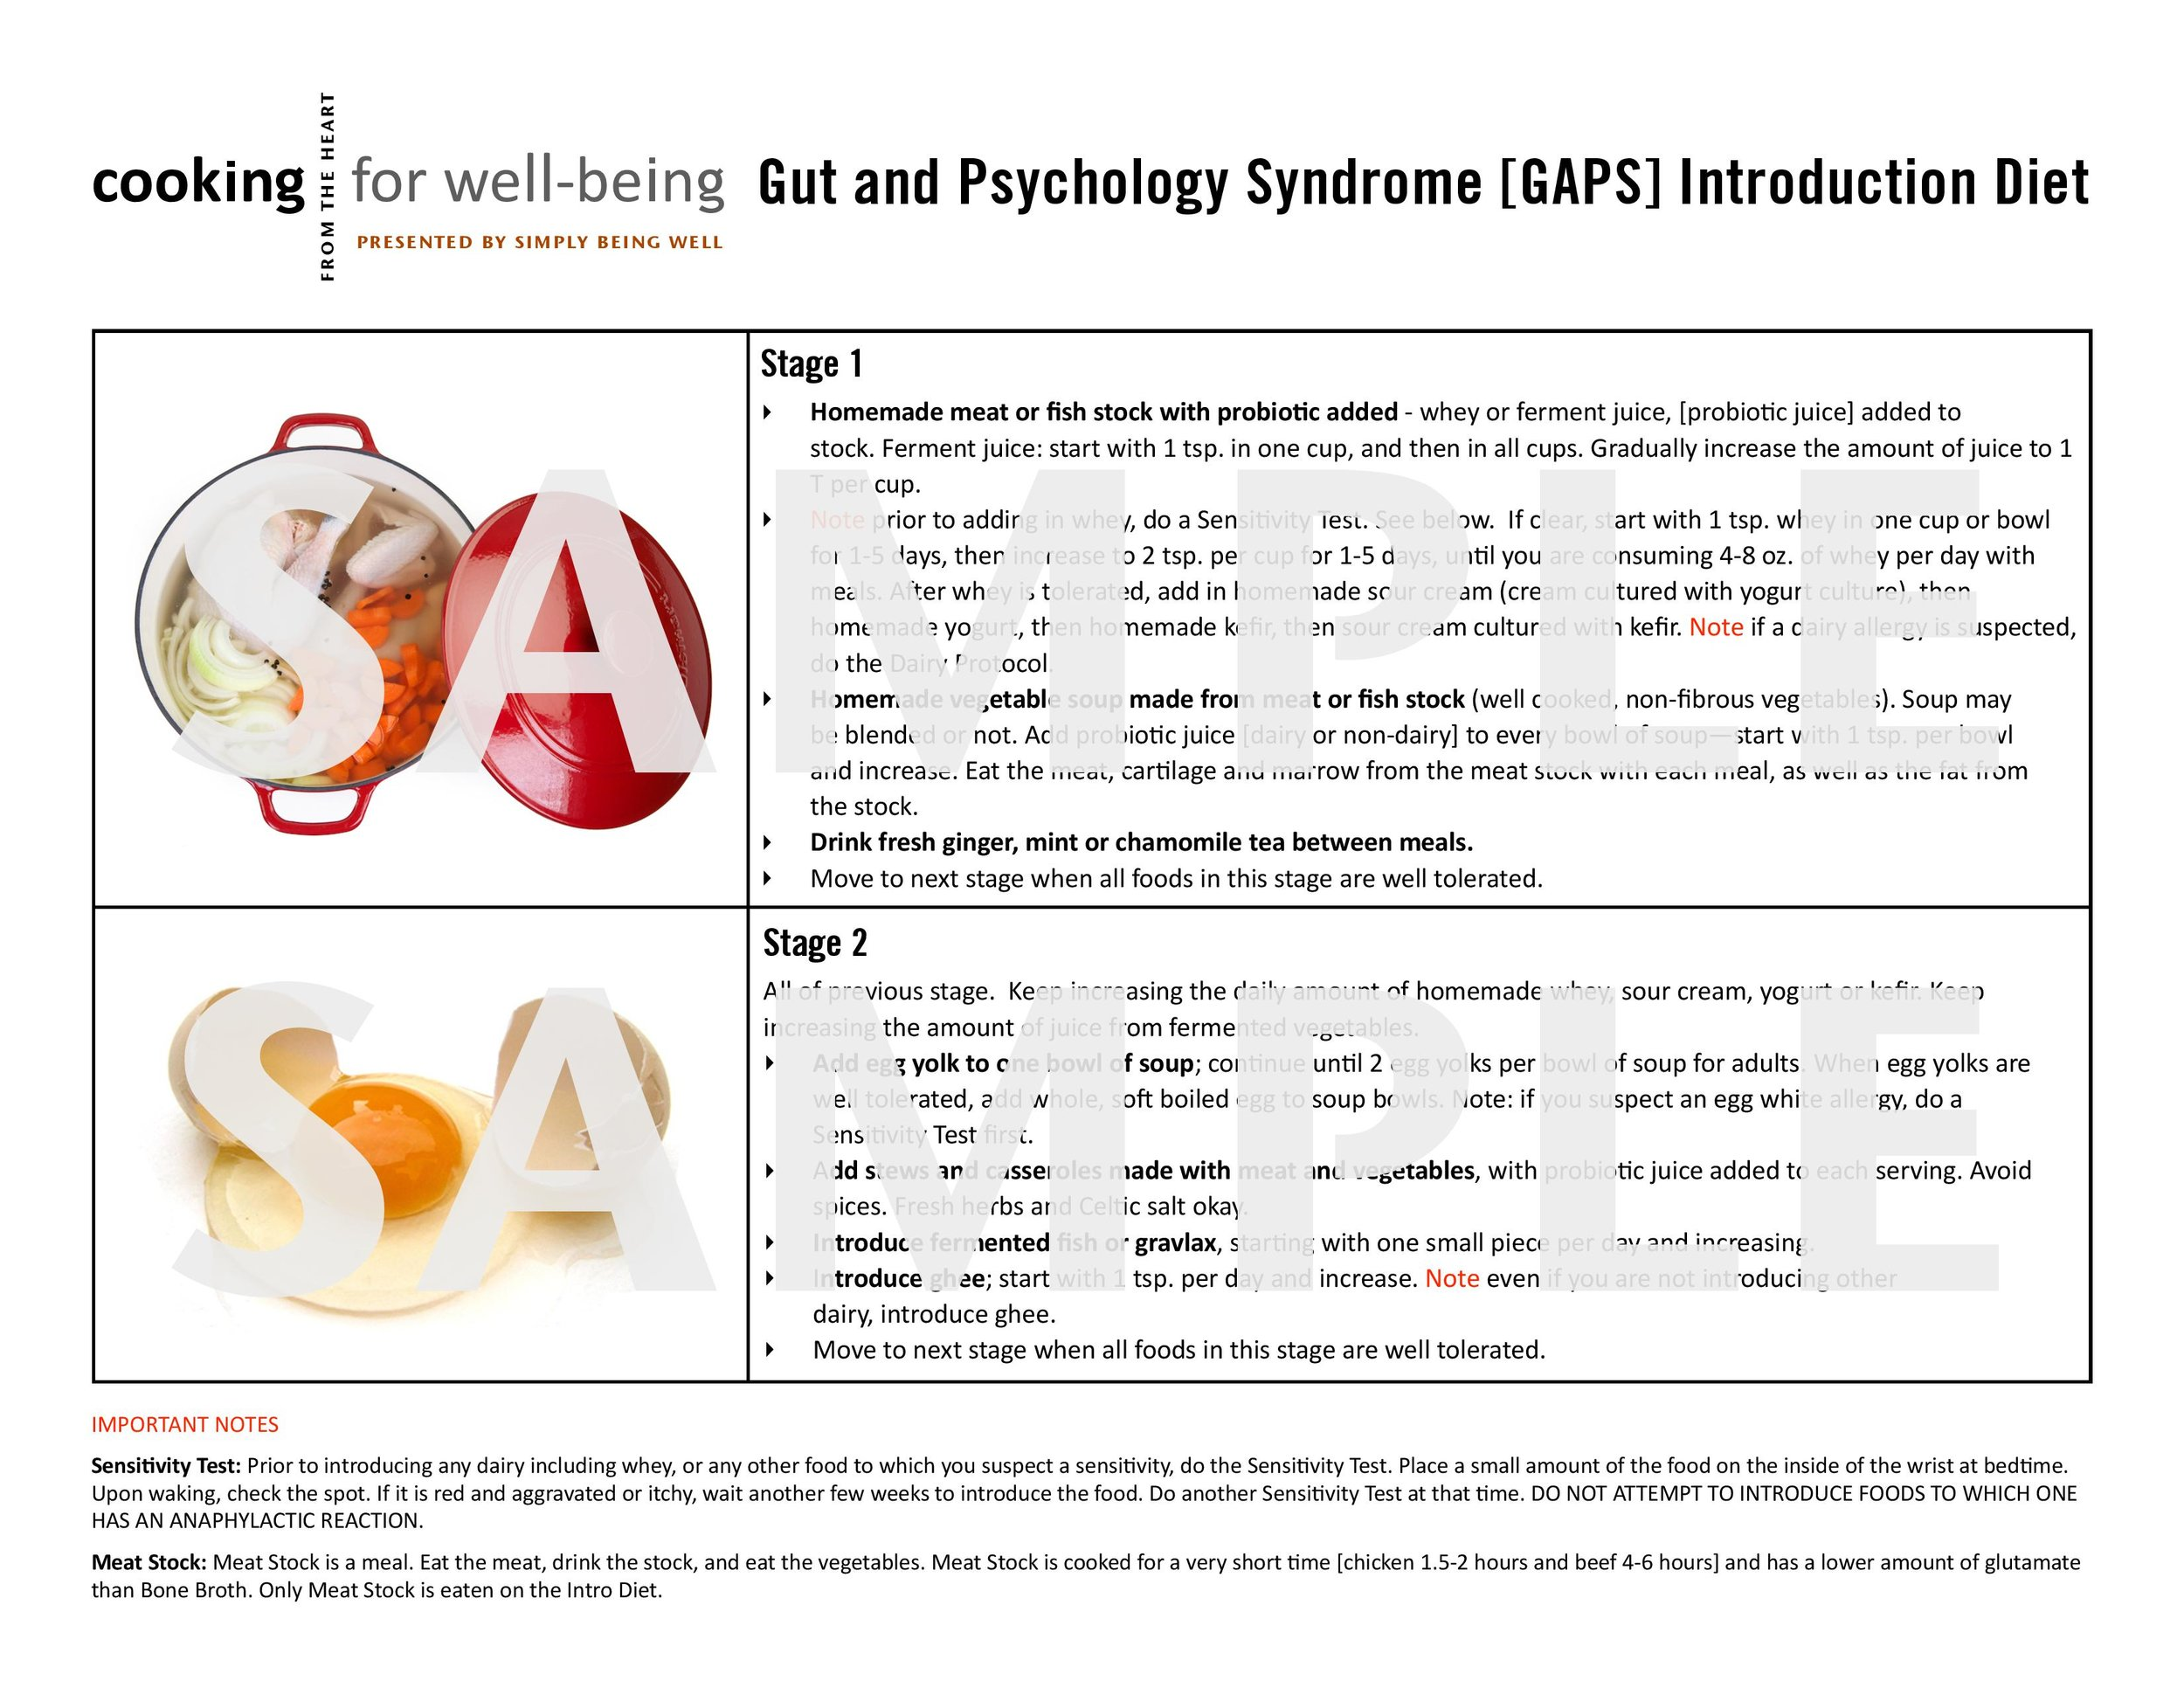 The GAPS Intro Diet Chart is two-sided and covers all six stages of the Intro Diet.